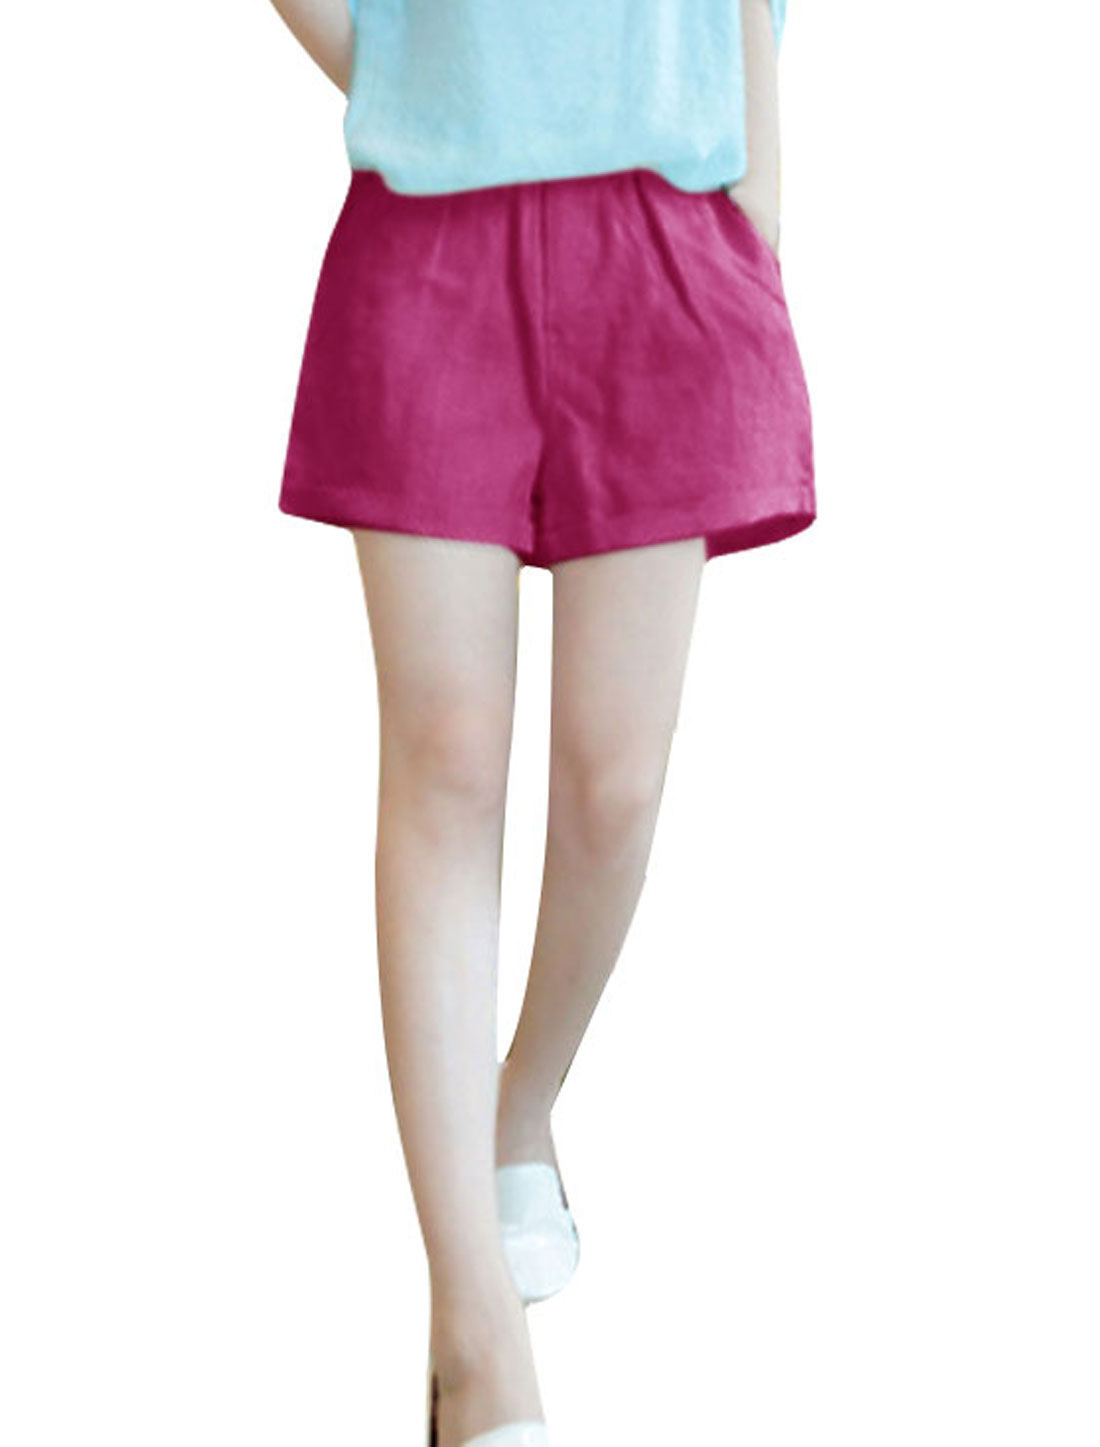 XS Fuchsia Slim Fit Style Elastic Waist Solid Color Summer Shorts for Ladies